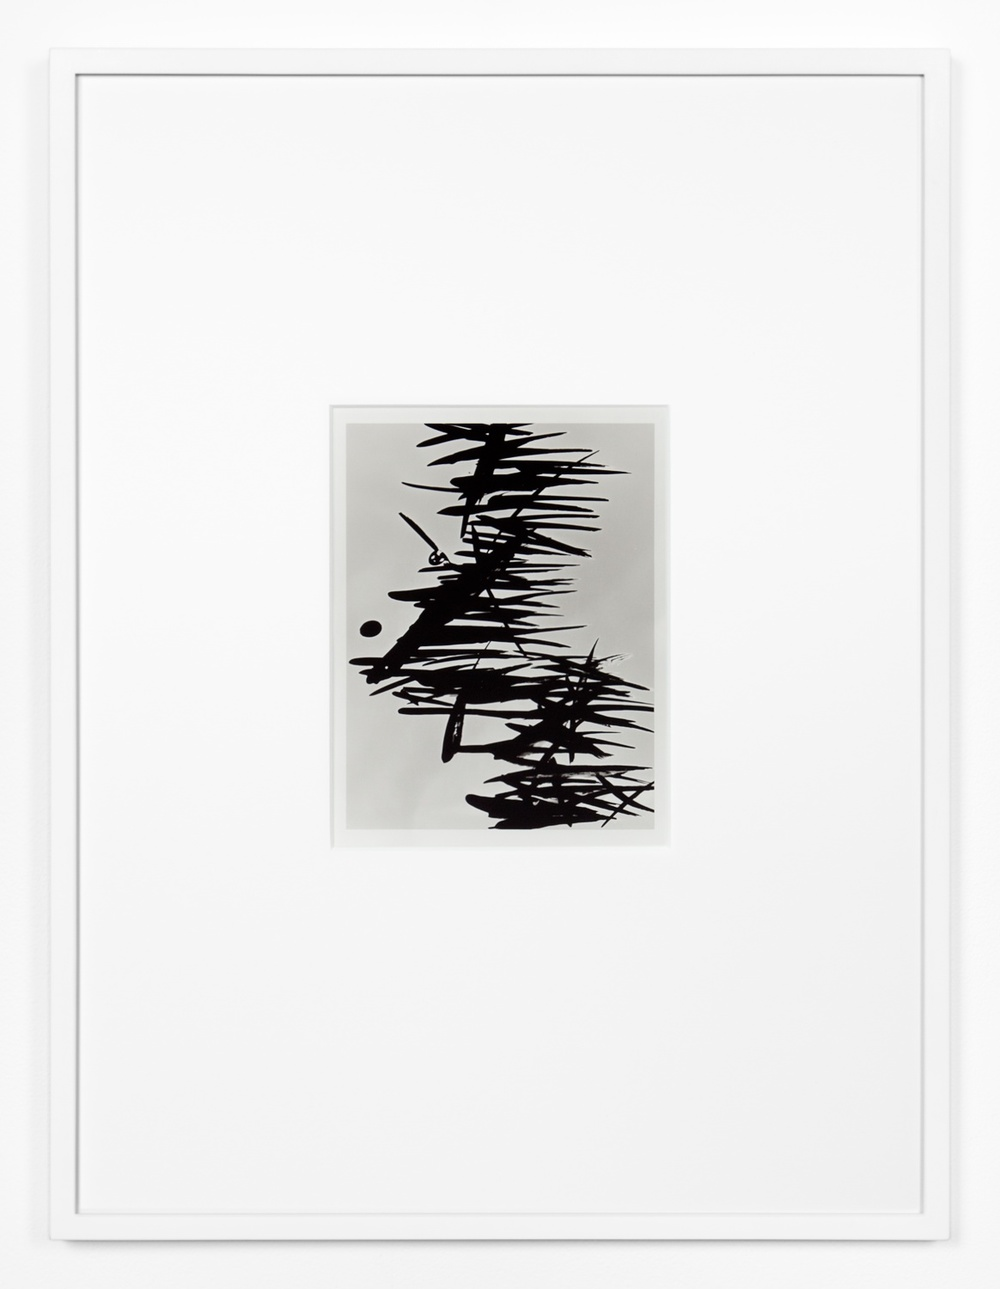 Anthony Pearson  Untitled (Solarization)  2012 Framed solarized silver gelatin photograph 17h x 12 ¾w x 1d in AP318